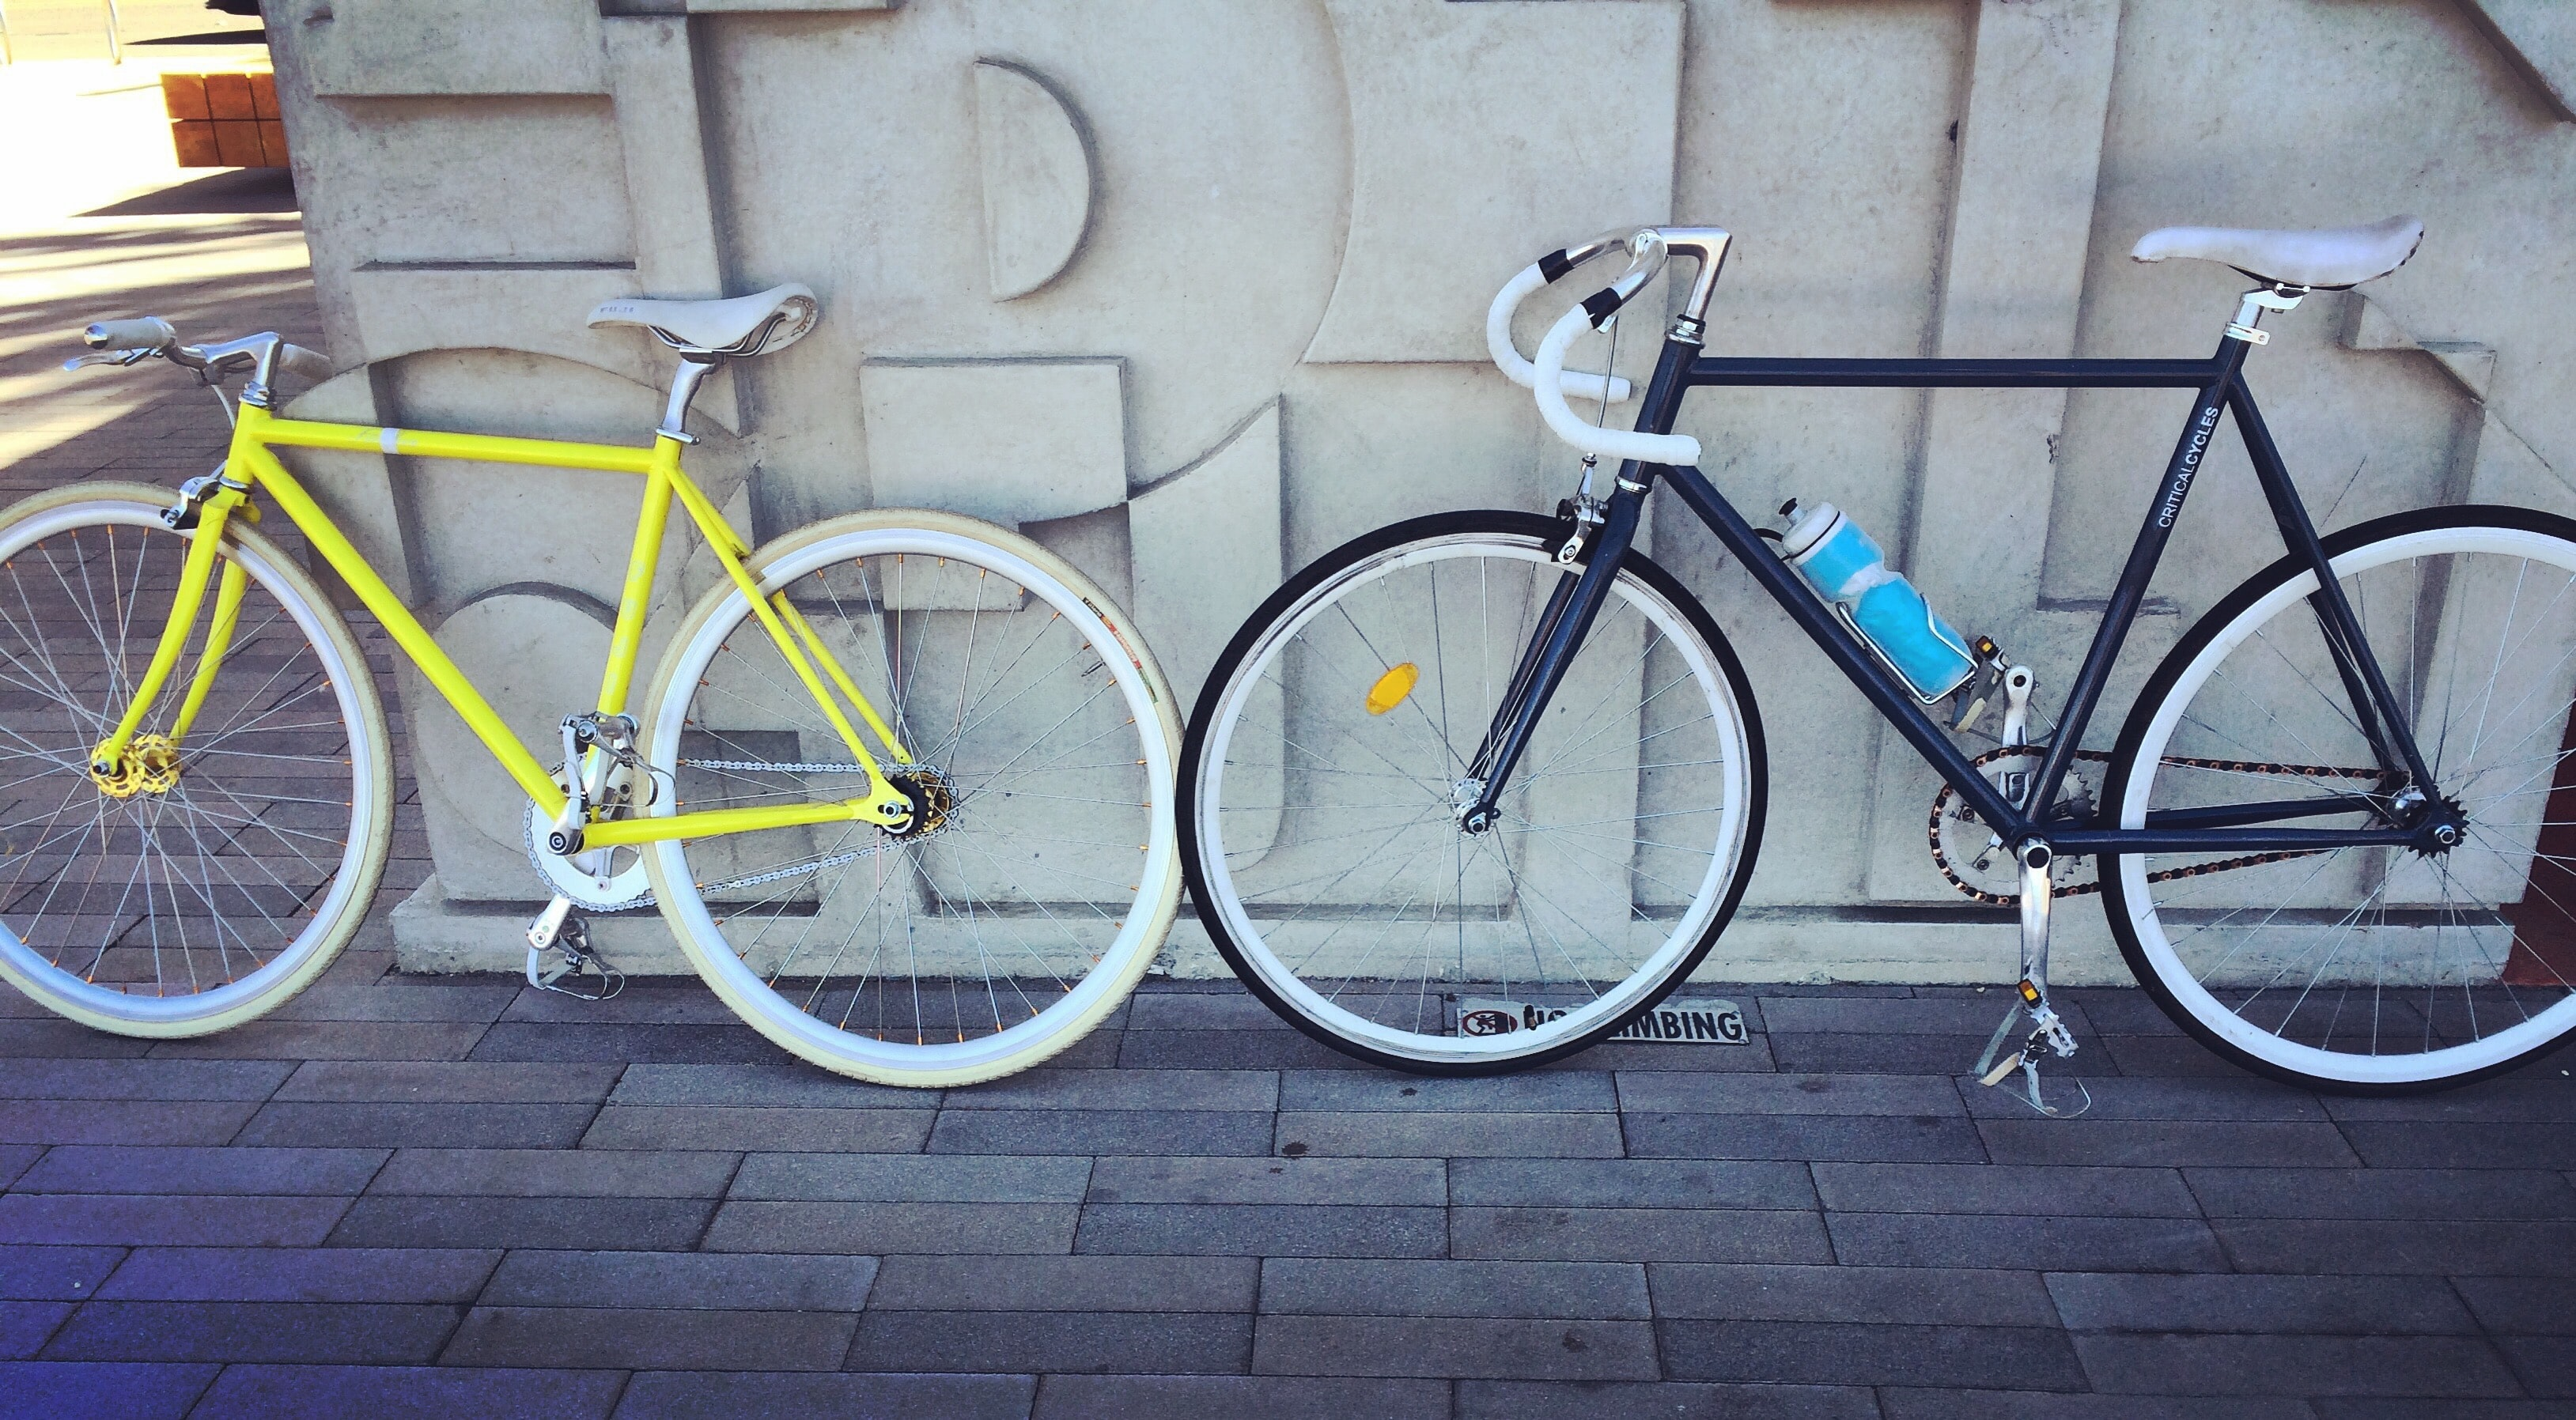 A yellow bike and a blue bike with a blue water bottle leaning against a wall in San Diego